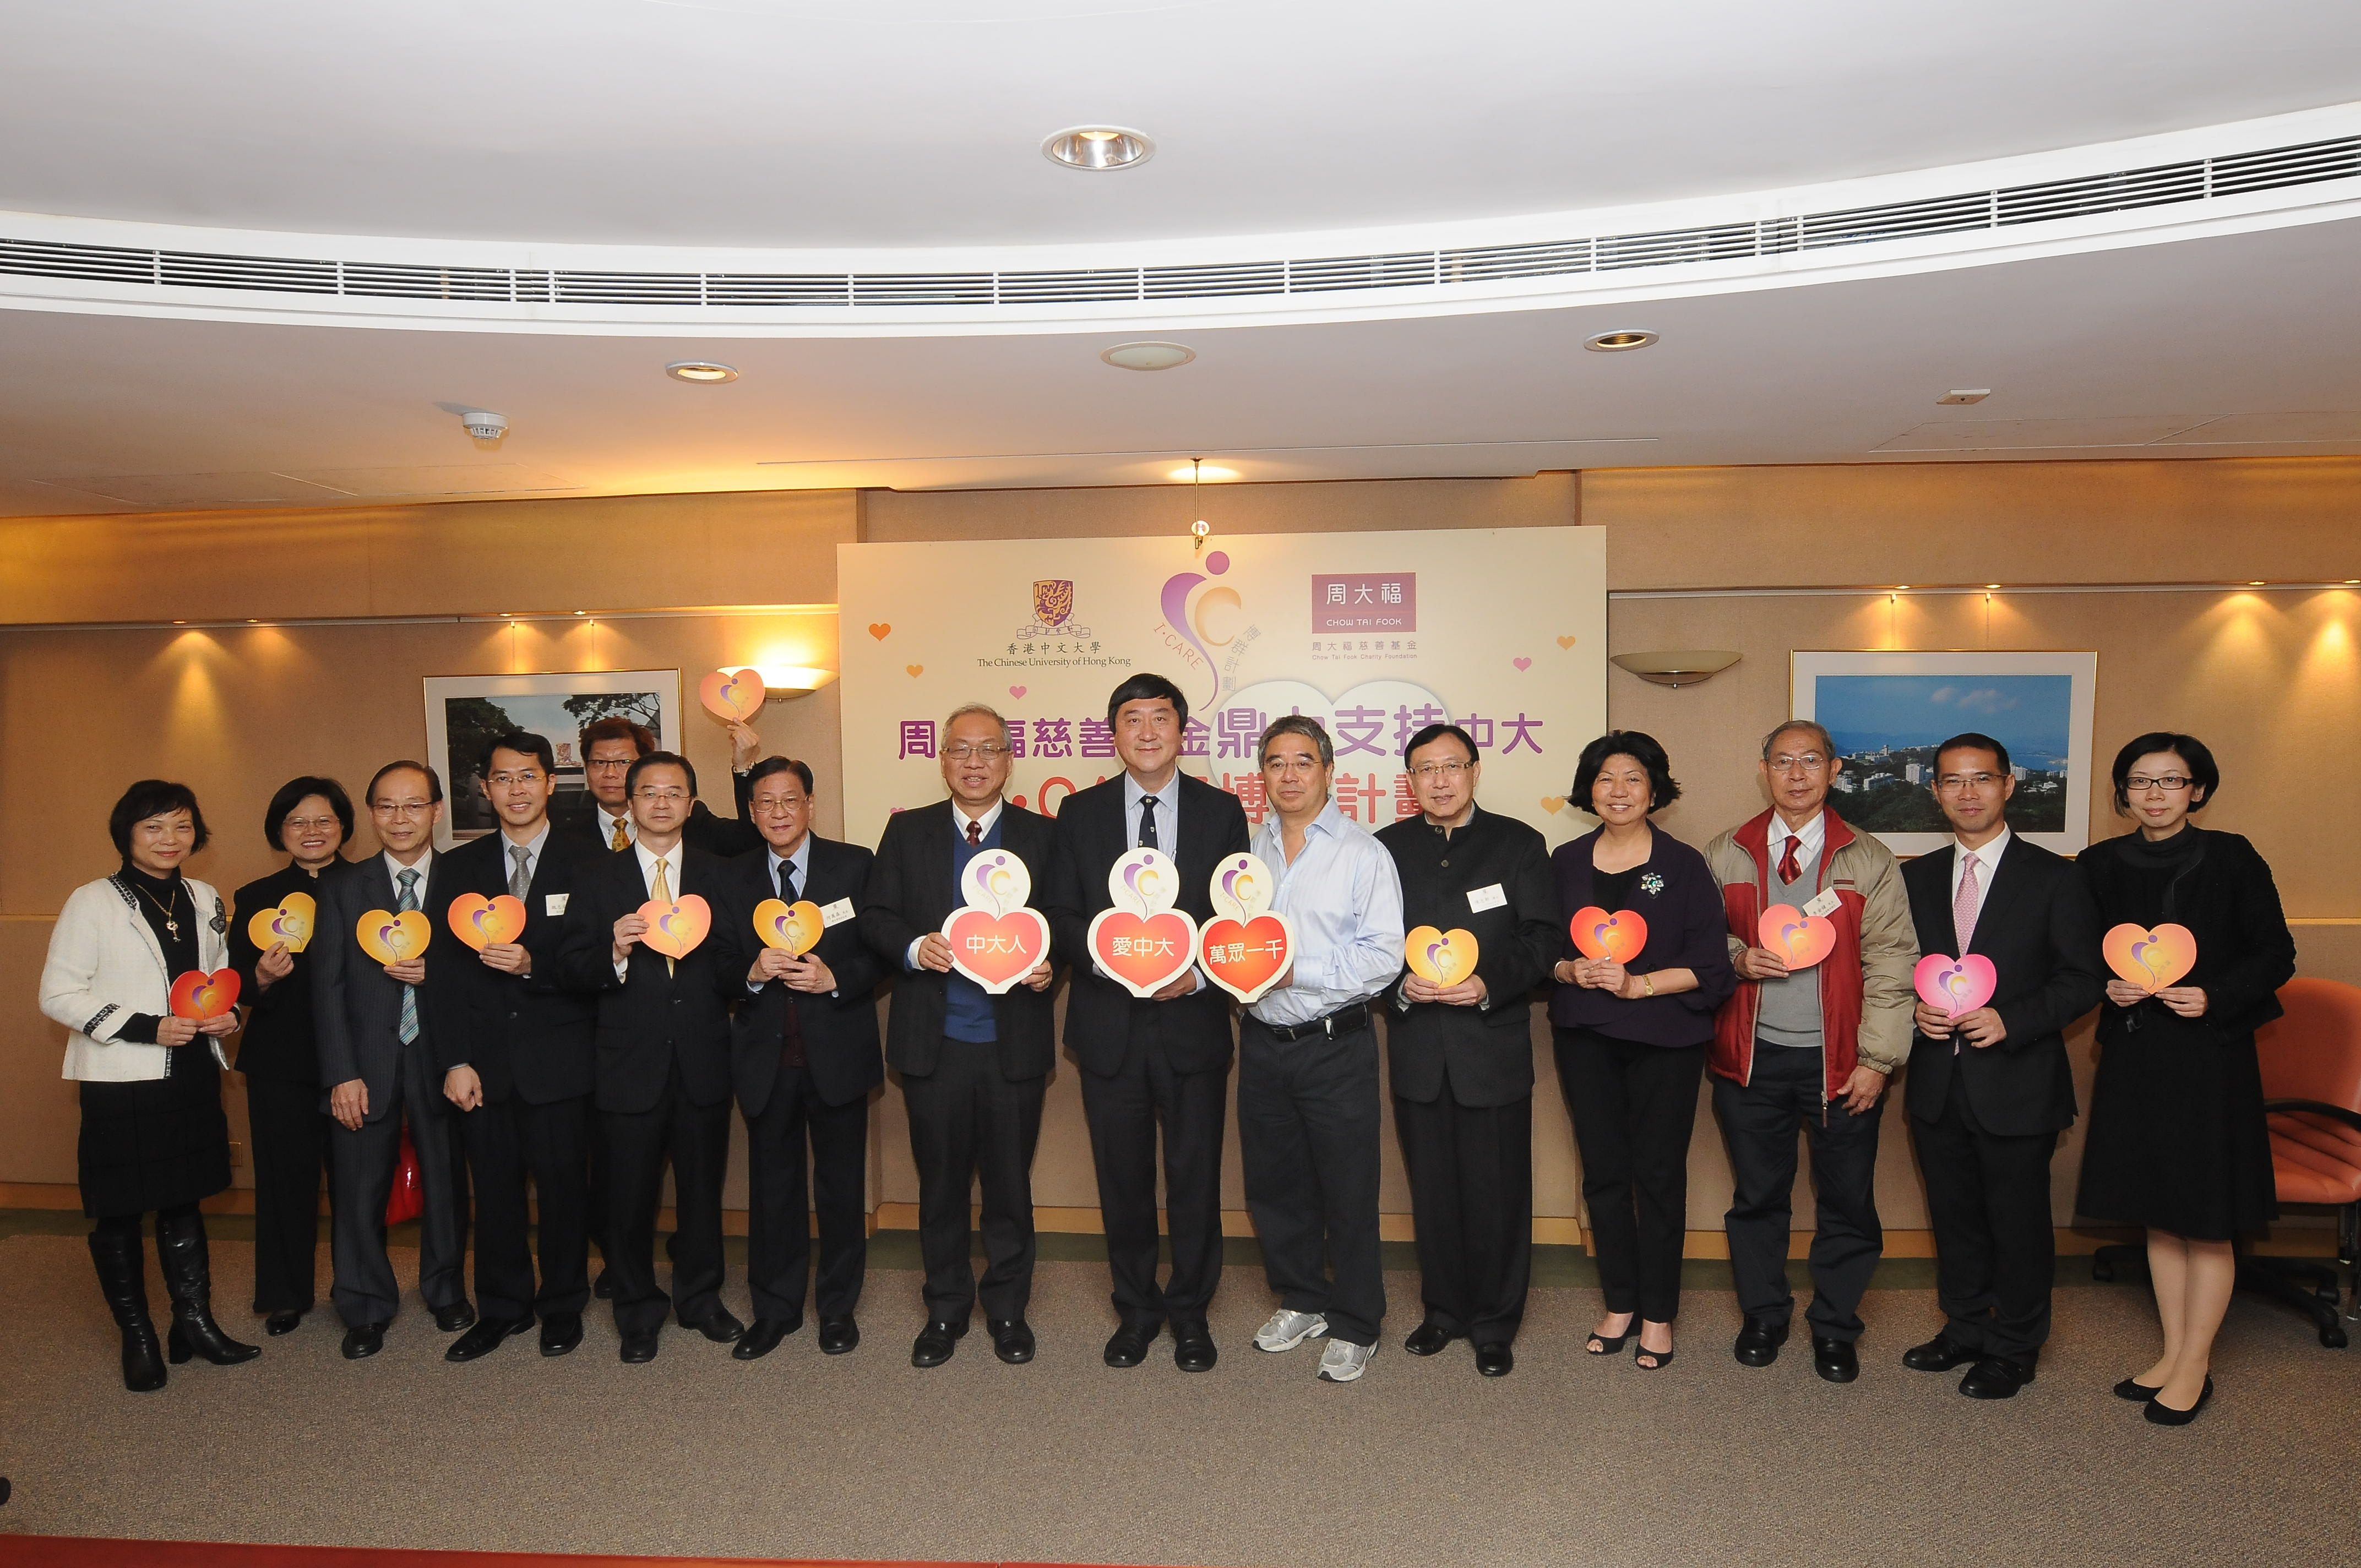 A group photo of Professor Sung, Mr. Cheng, Professor Yau, members of Chow Tai Fook Charity Foundation and CUHK alumni.